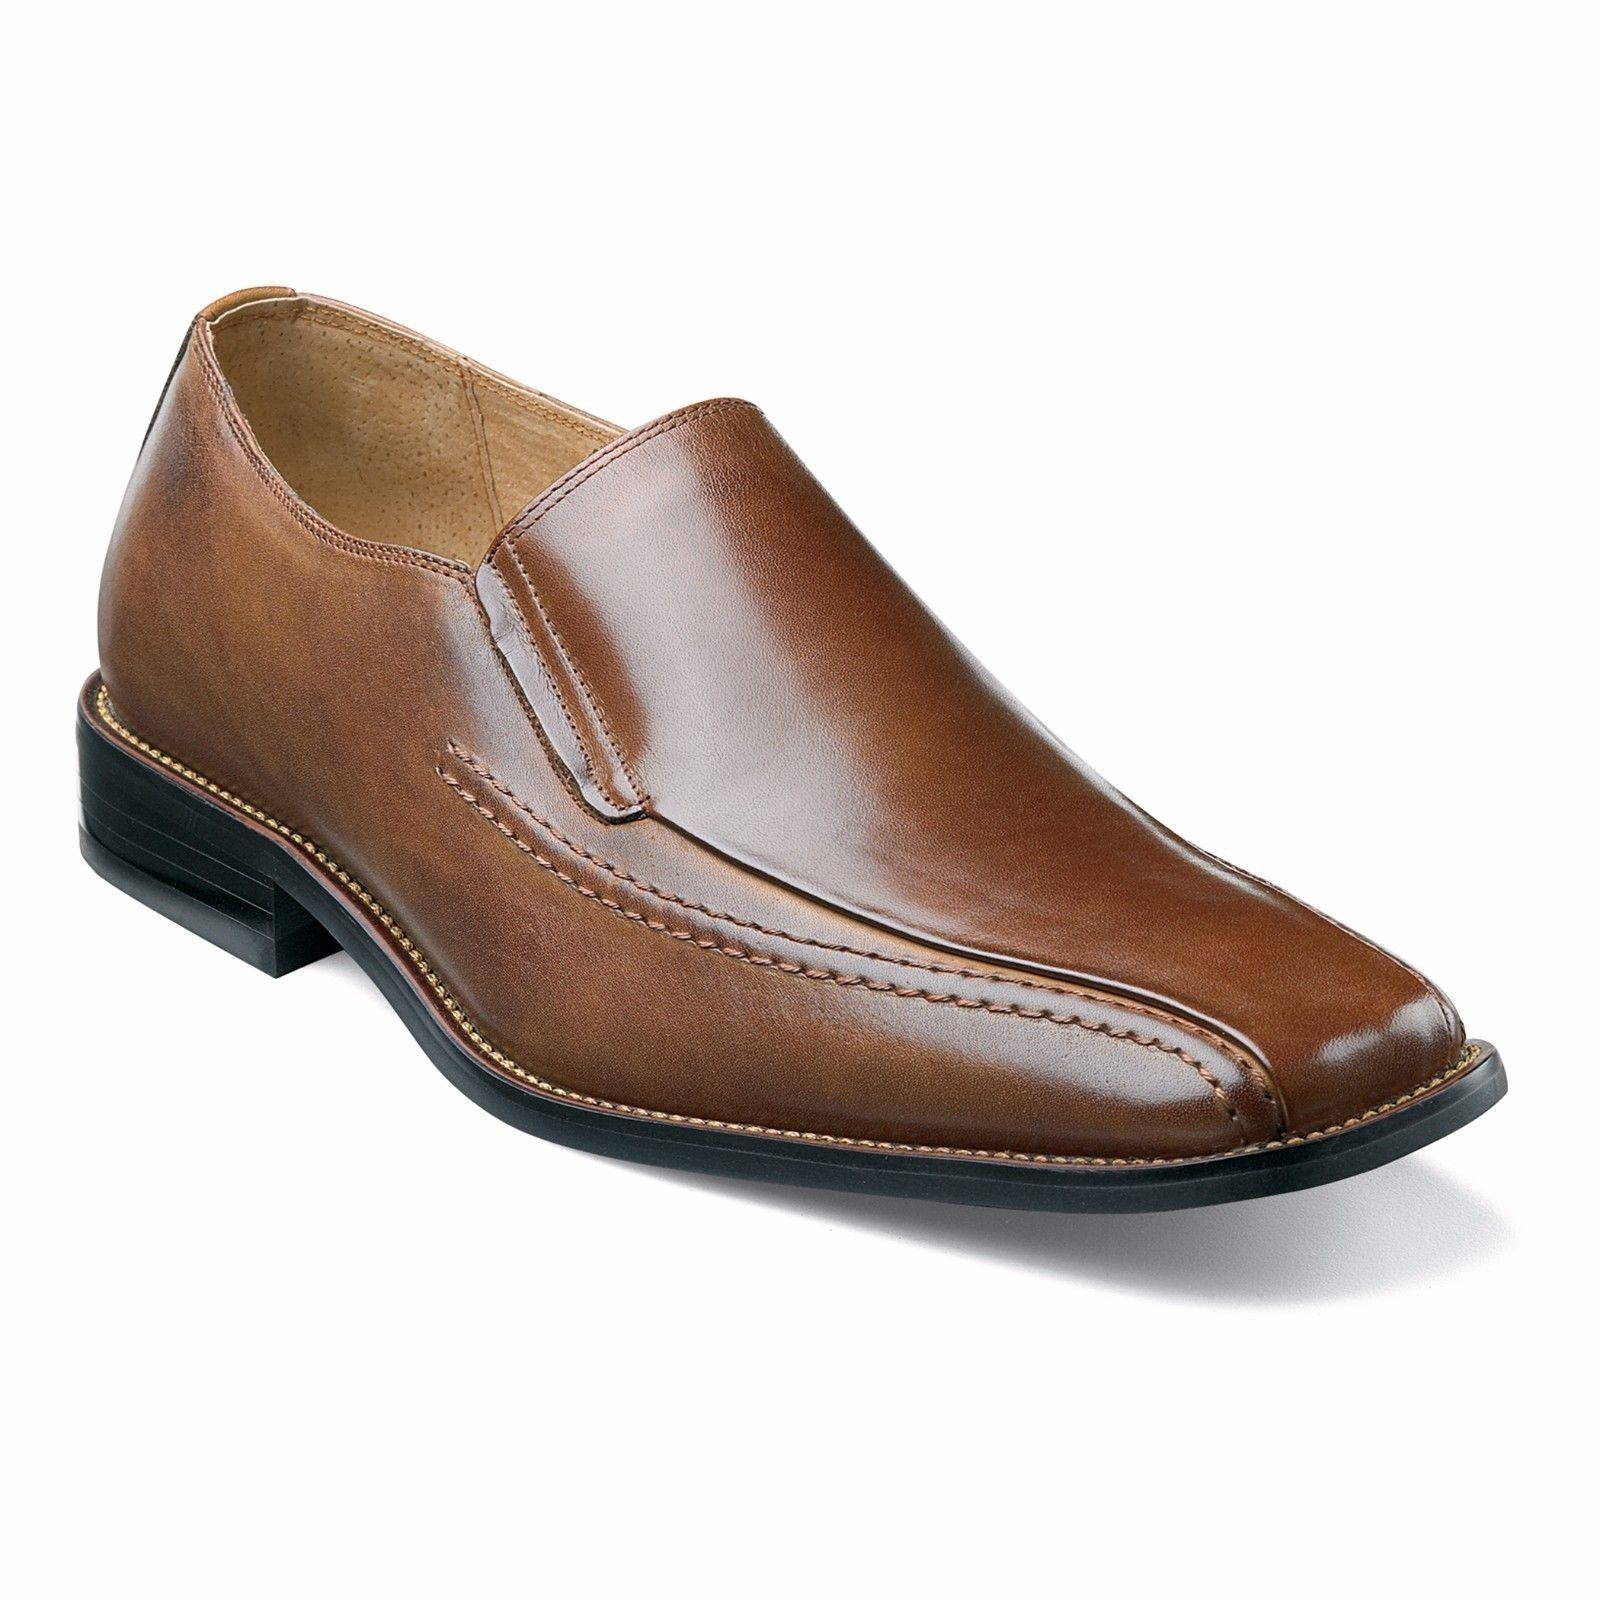 Stacy Adams Herren Cognac Hillman Festliches Kleid ohne Bügel Leder-Slipper